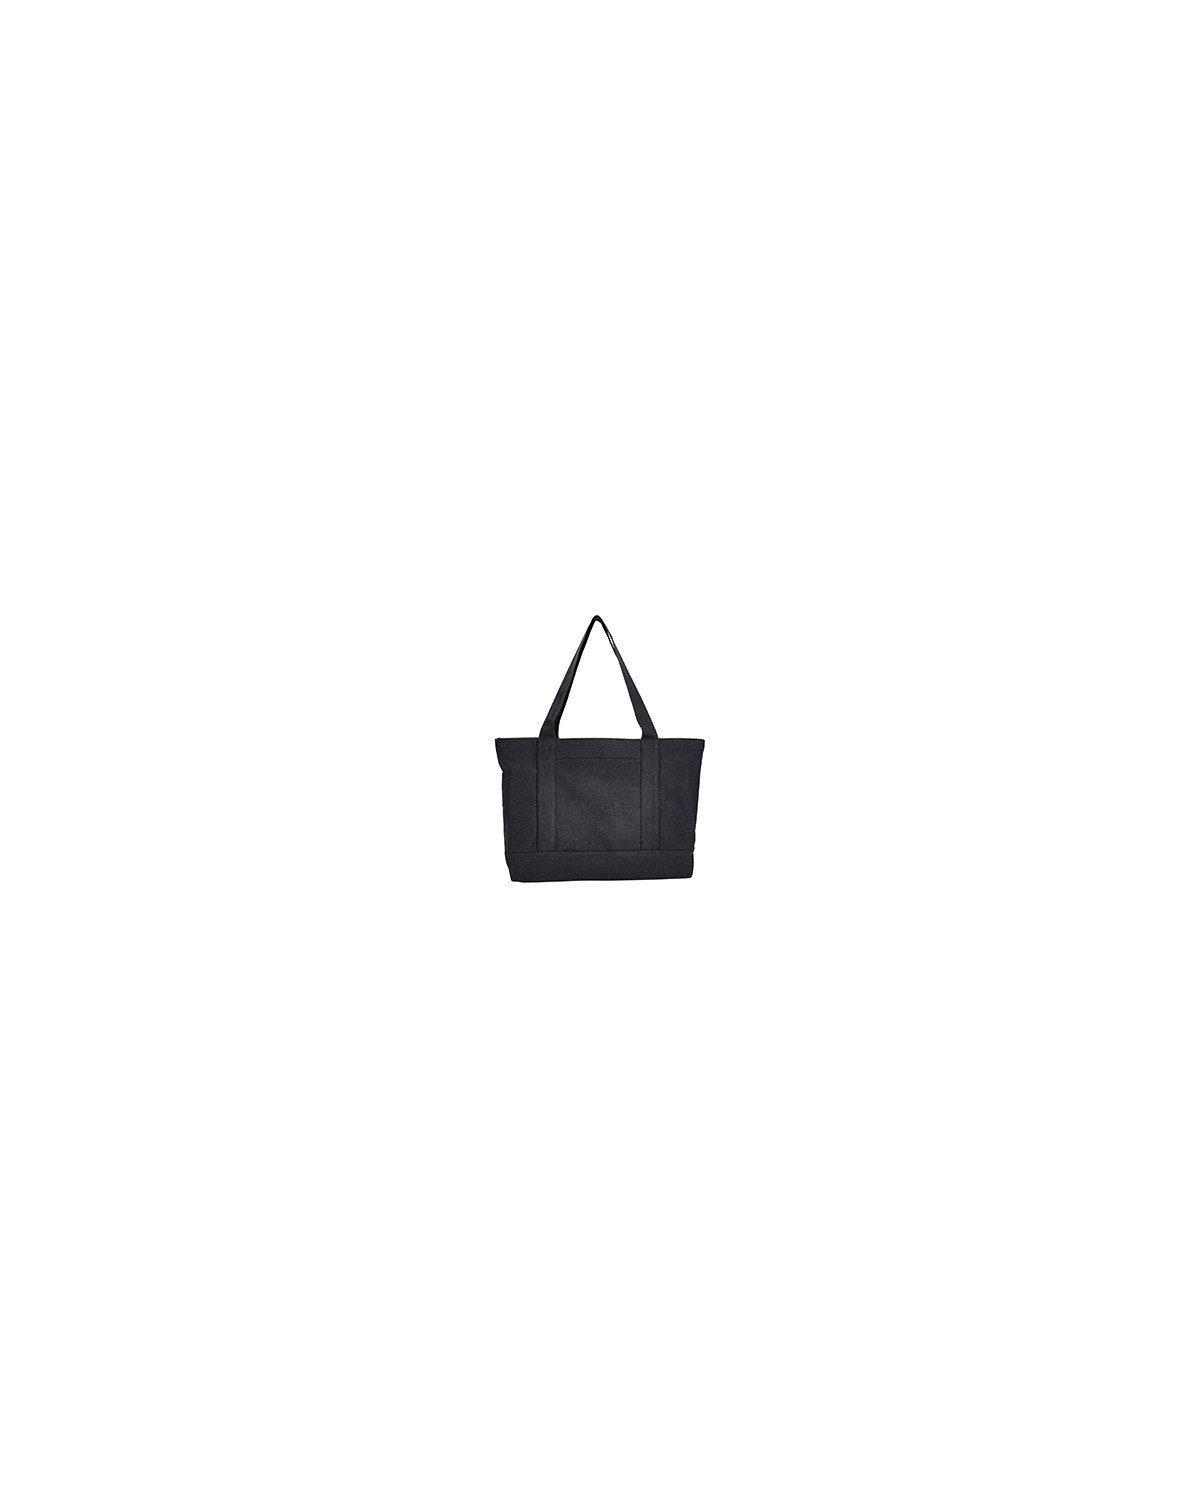 8870 Liberty Bags WASHED BLACK